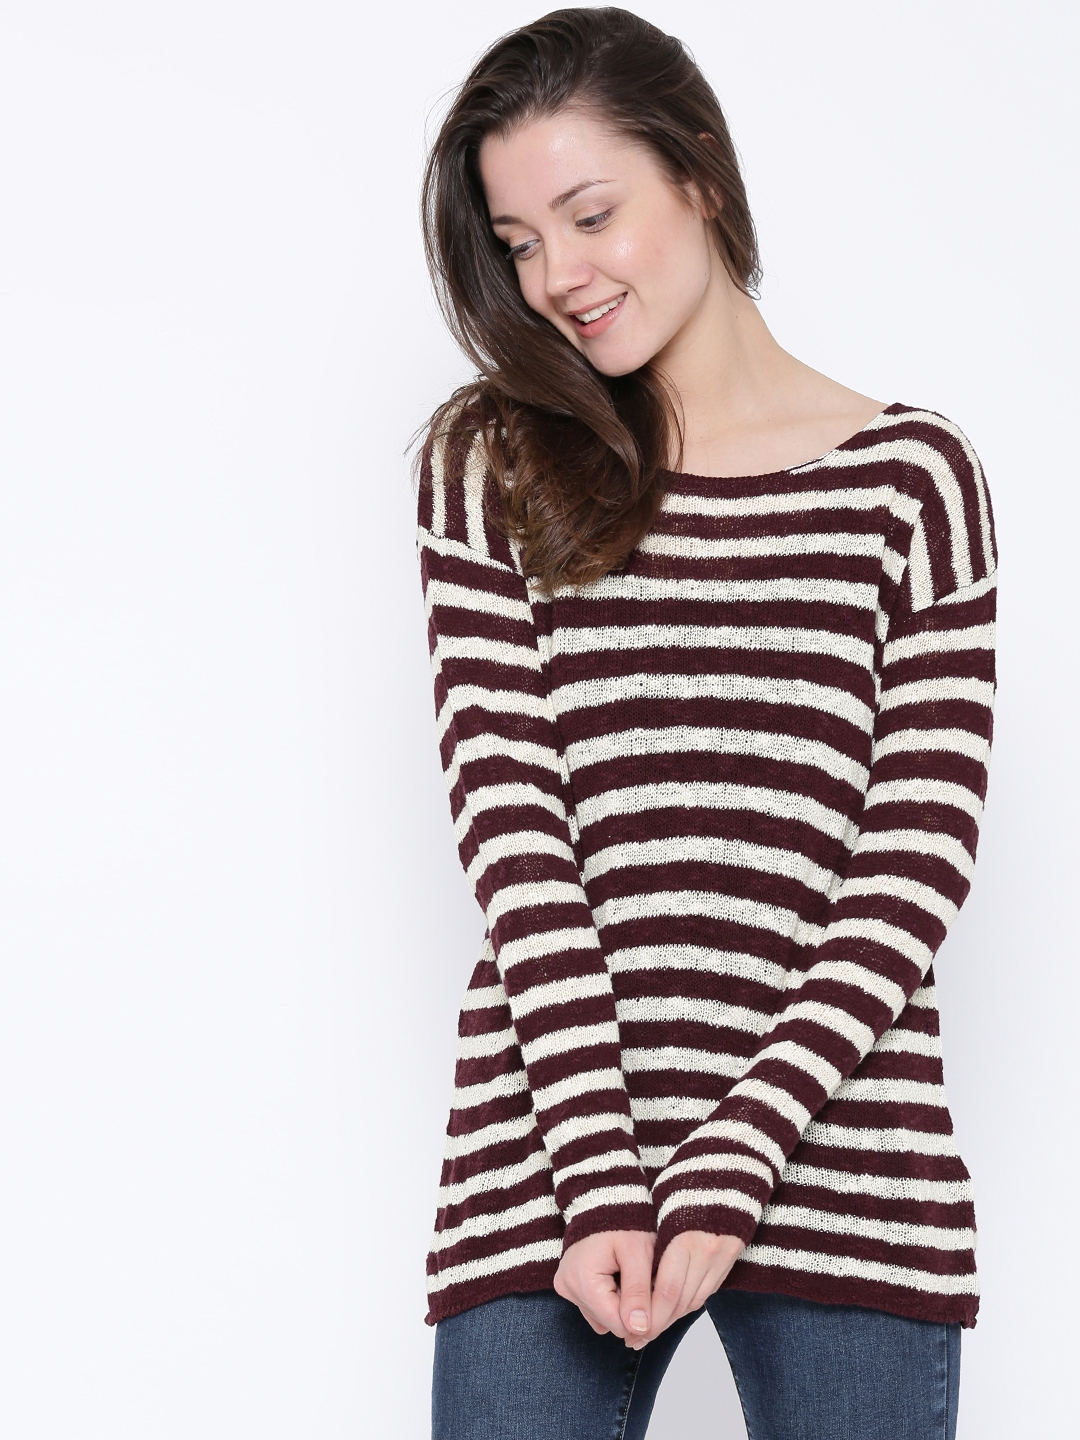 burgundy sweater with white stripes her sweater